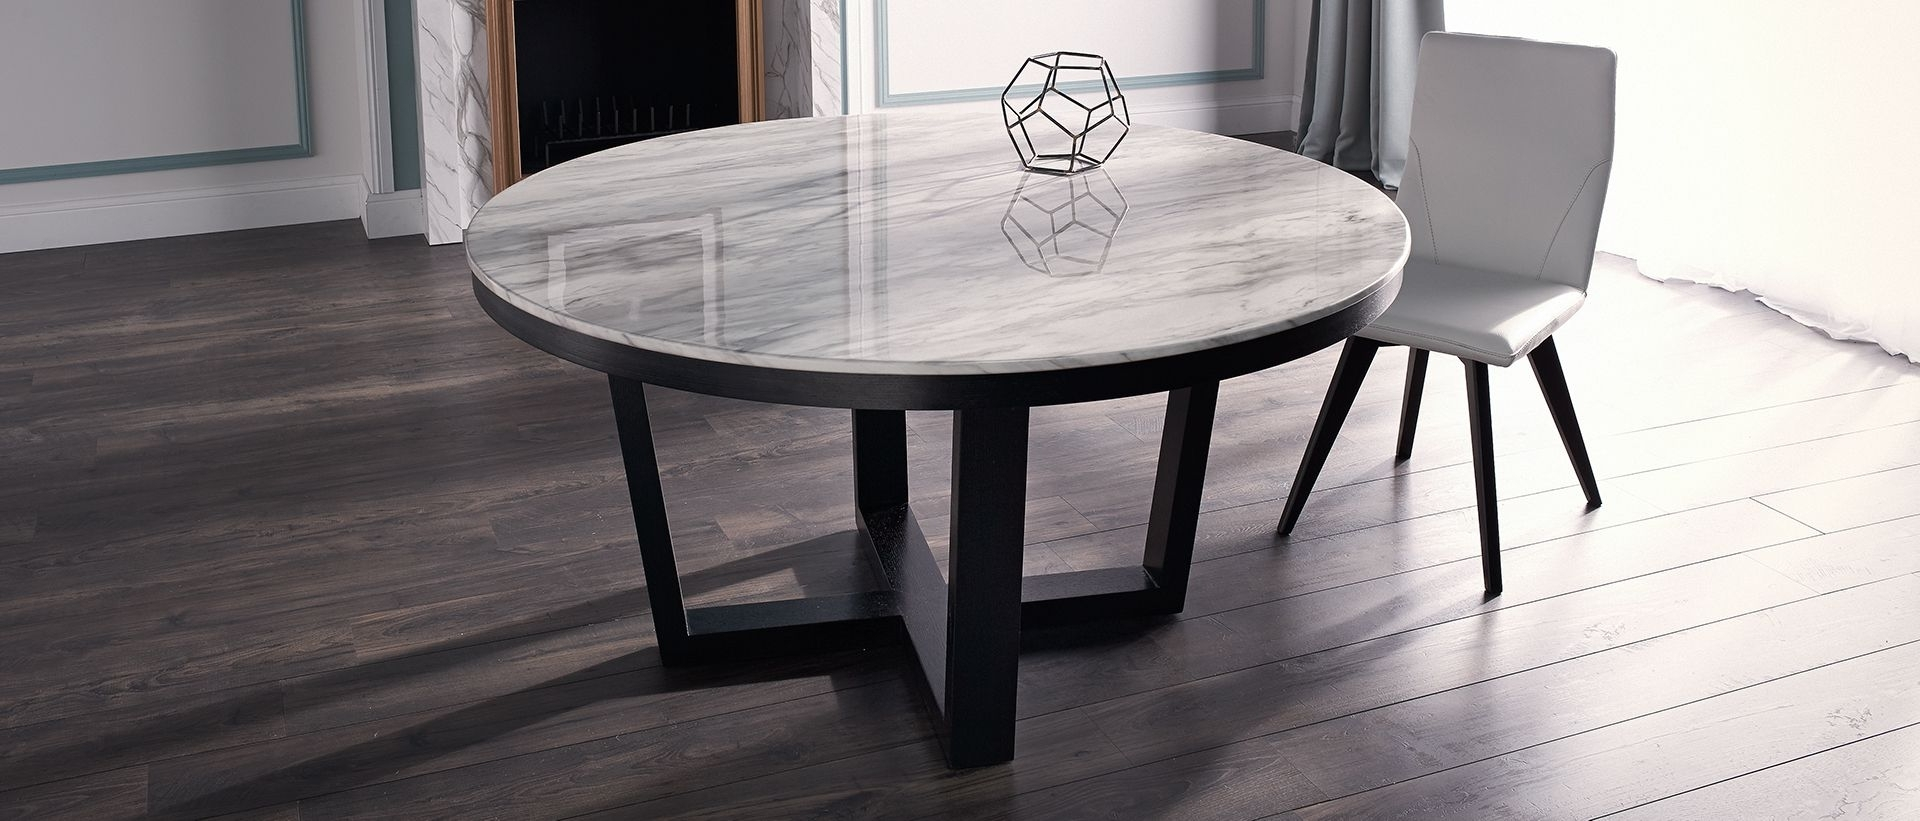 2017 Perth Glass Dining Tables Pertaining To Nick Scali (View 3 of 25)